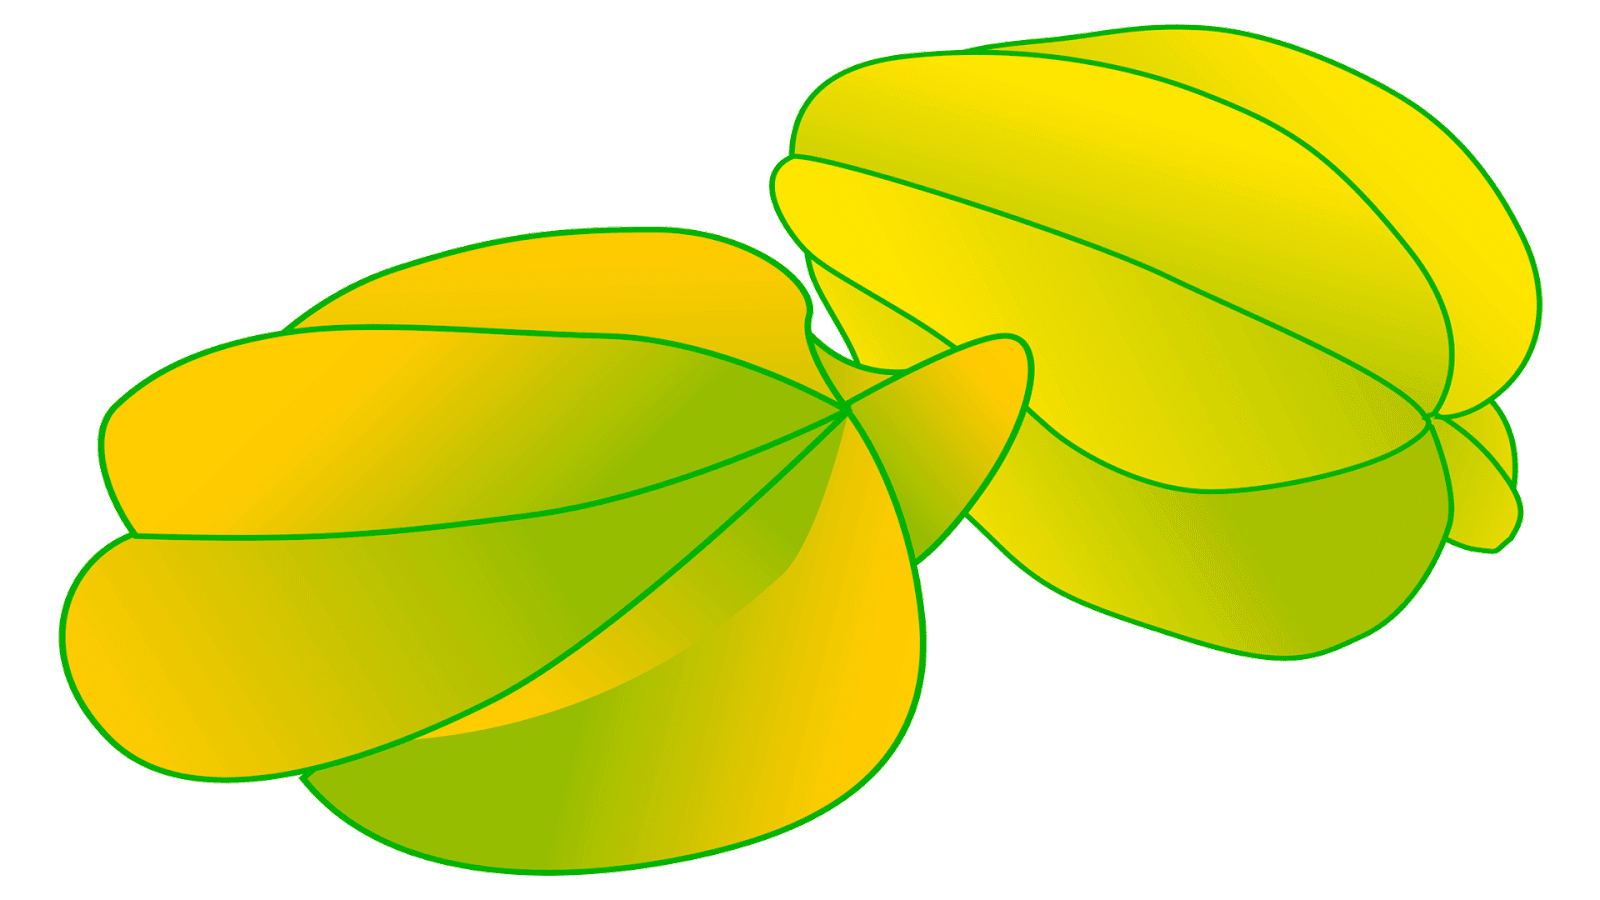 banner freeuse library Fruits clipart.  free name starfruit.